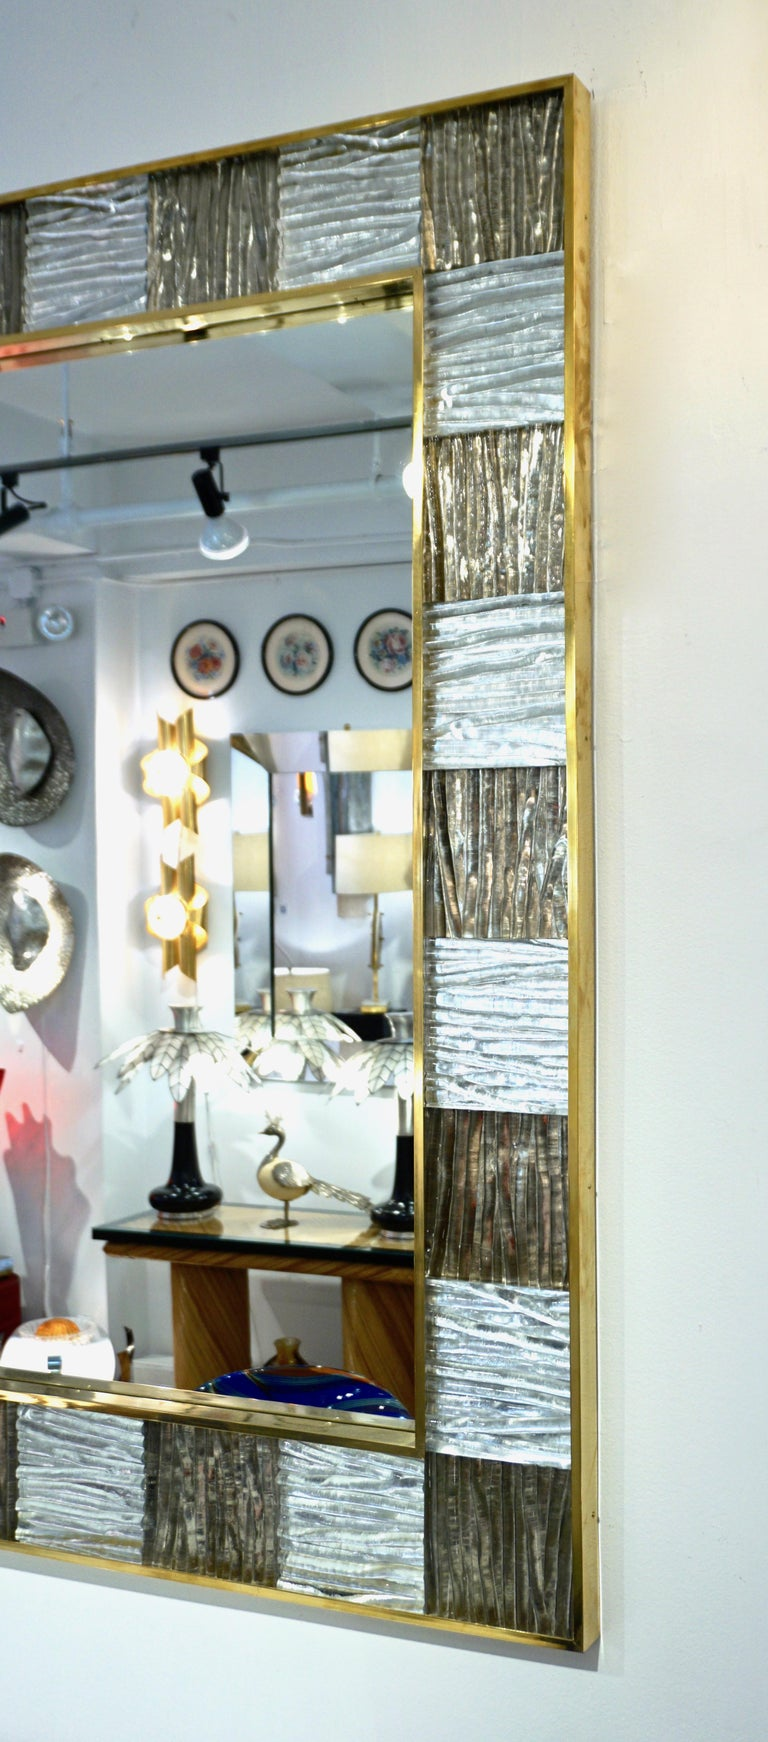 Bespoke Italian Square Silver Leaf Smoked Crystal Murano Glass Brass Tile Mirror In New Condition For Sale In New York, NY